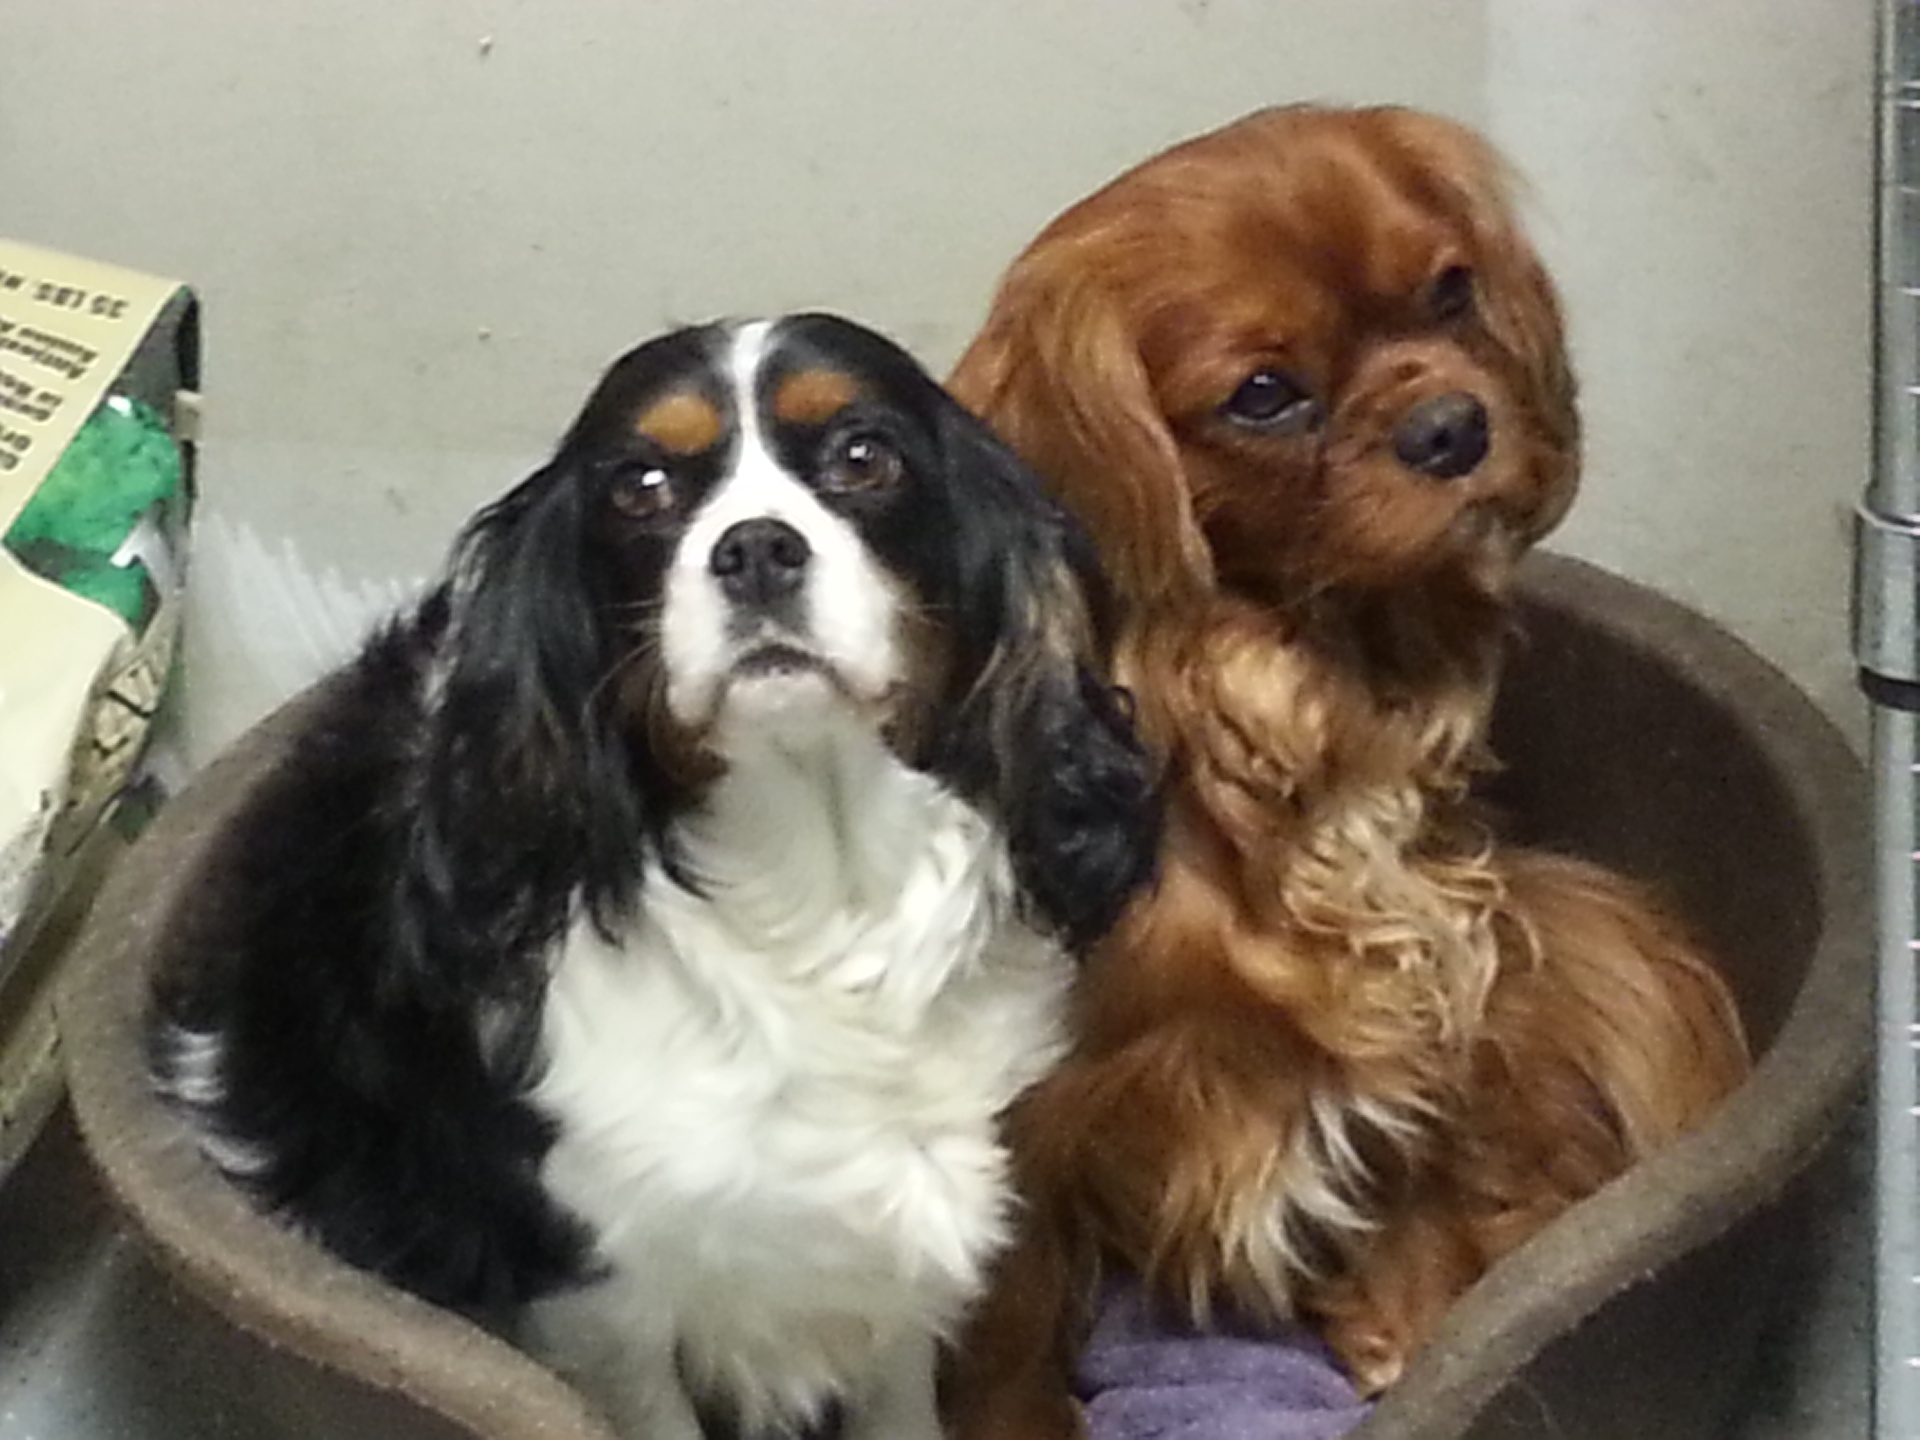 Cavalier King Charles Spaniel Dogs for Sale in NY and CT